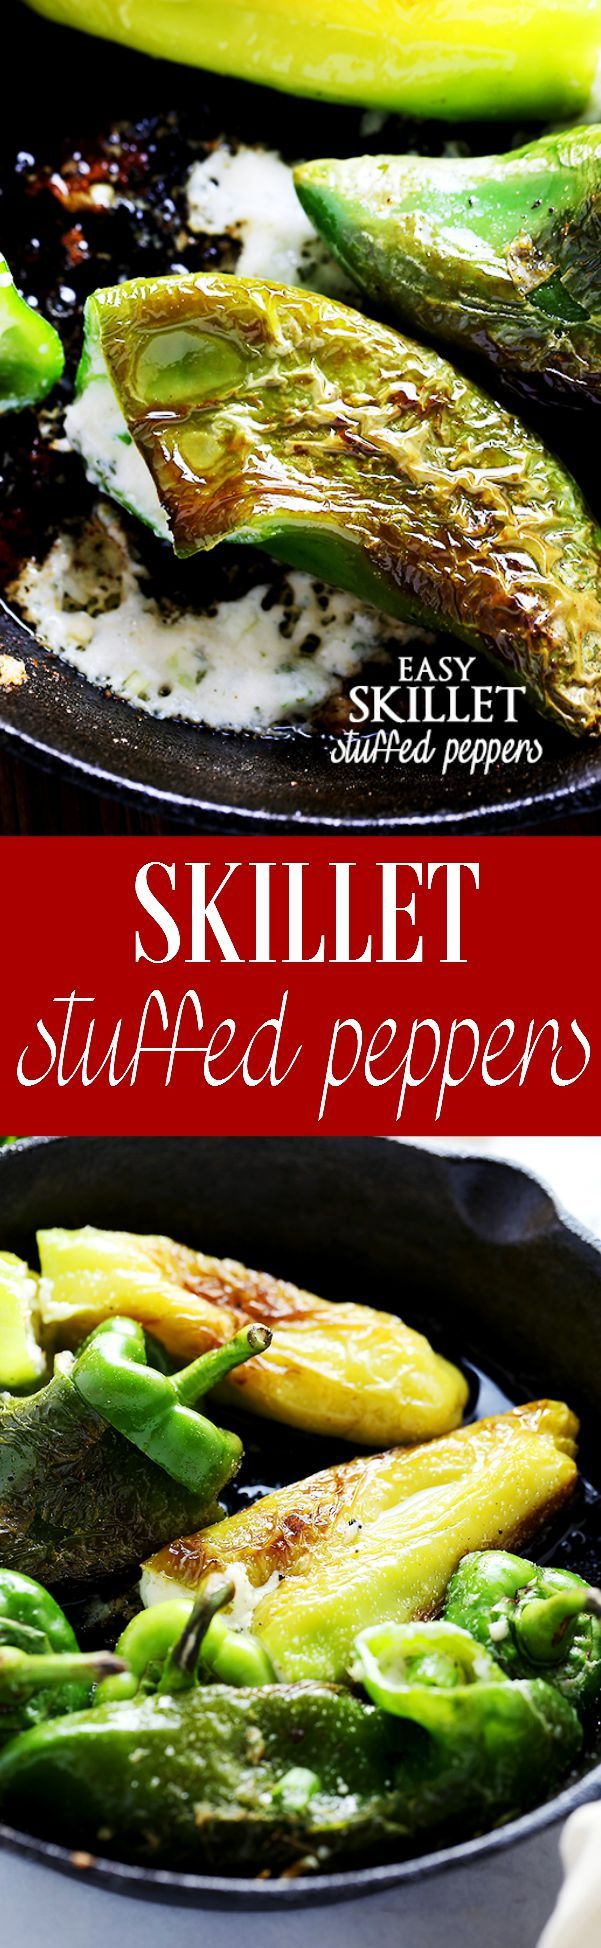 recipe: stove top stuffed peppers in tomato sauce [33]